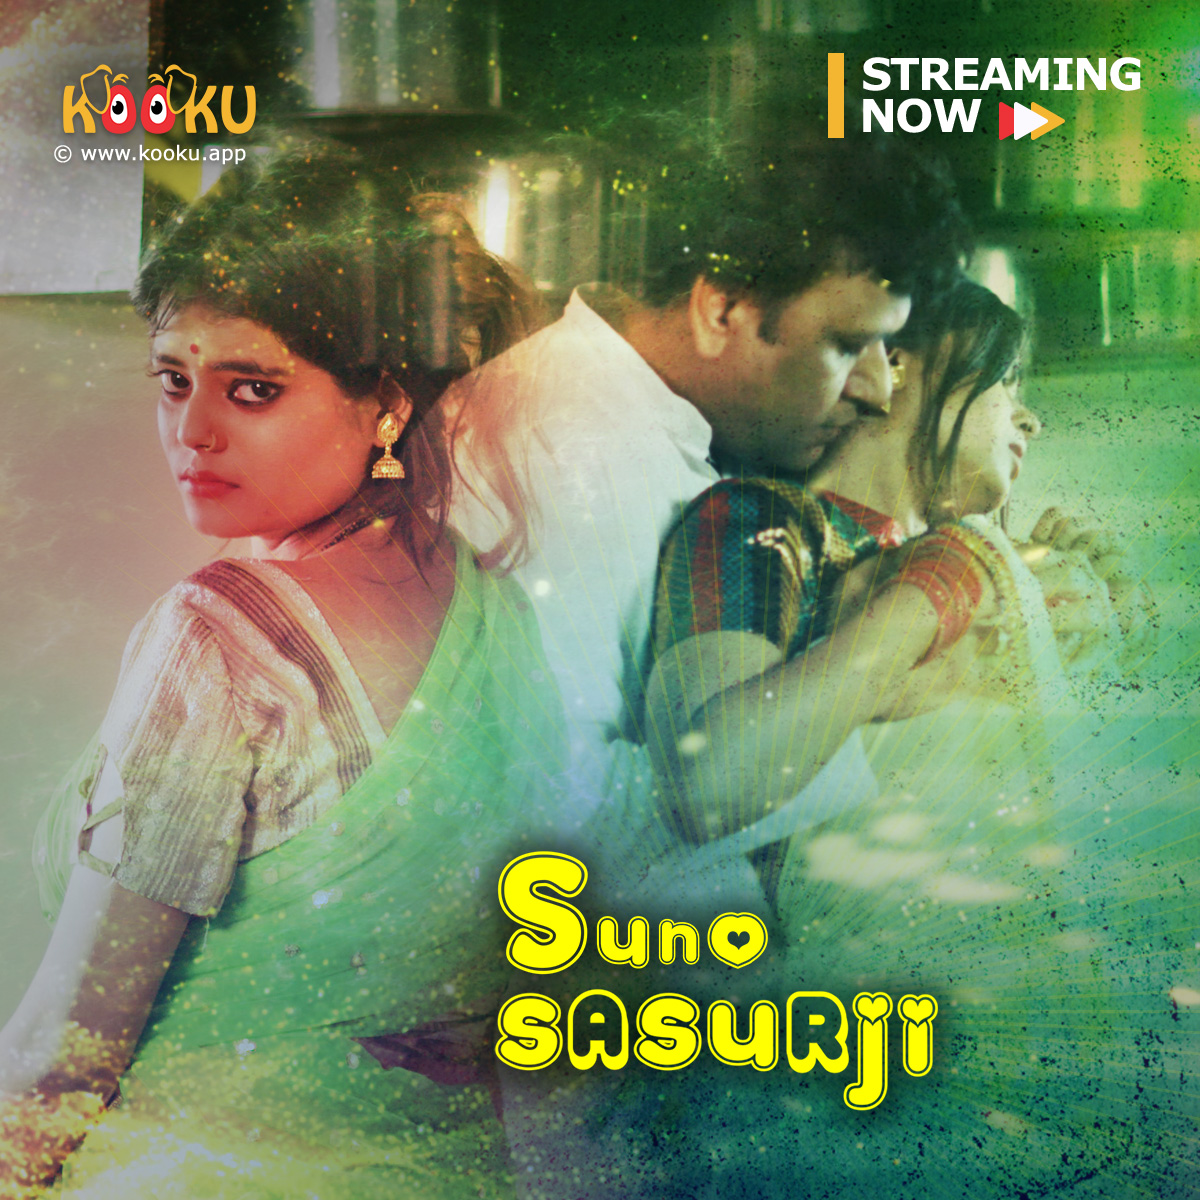 Suno Sasurji | S01 | 2020 | Hindi | 1080p | 720p | WEB-DL | Kooku